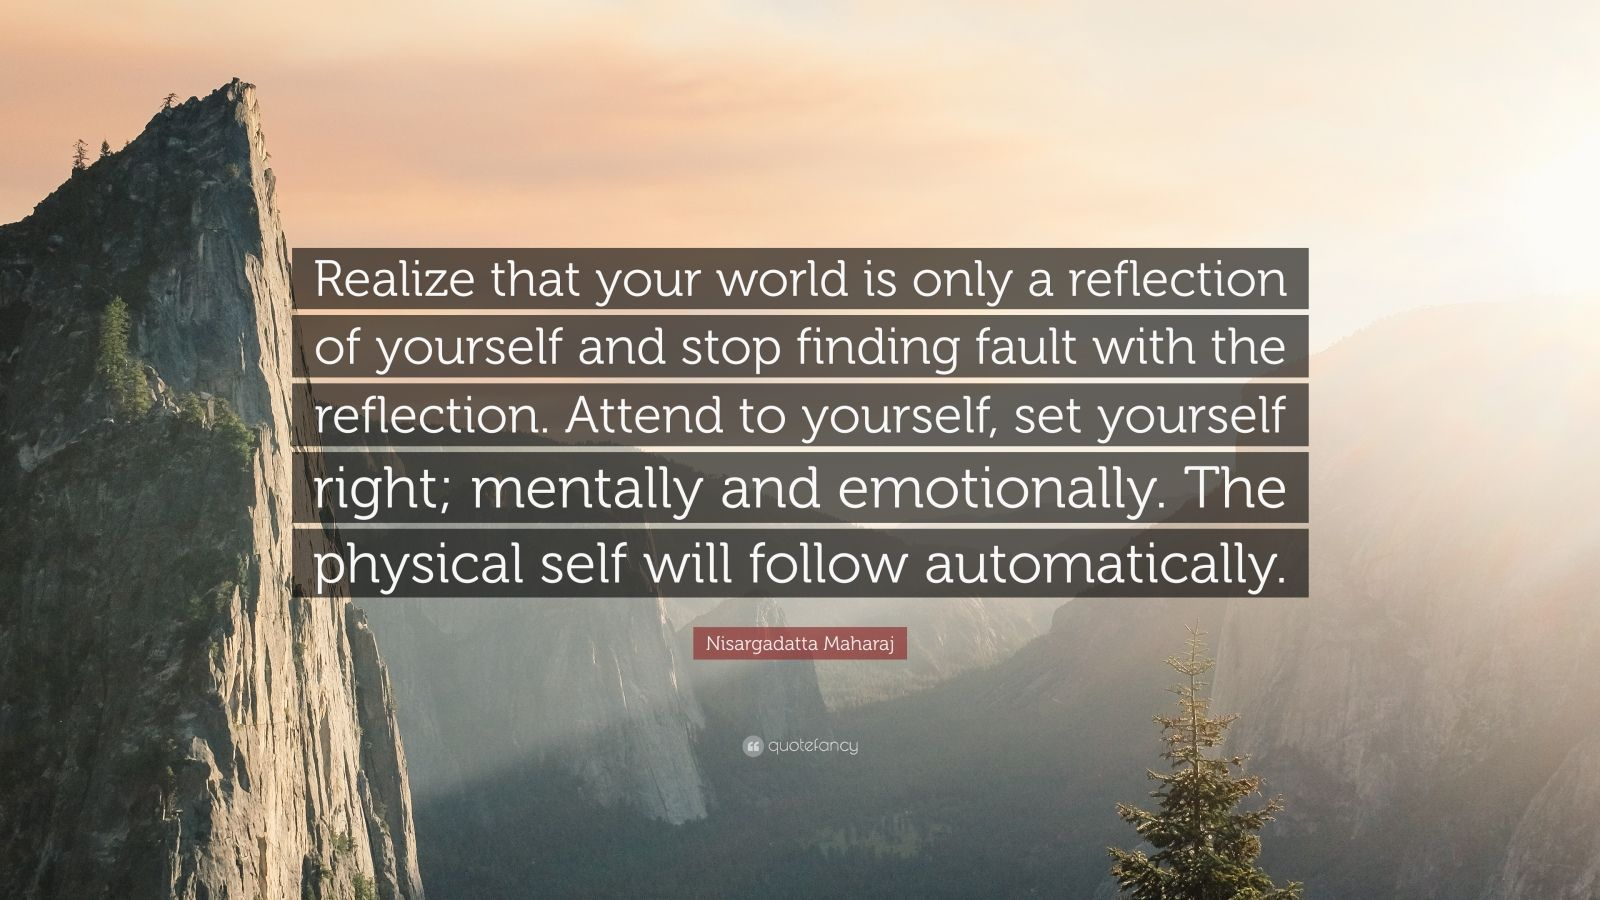 """Nisargadatta Maharaj Quote: """"Realize that your world is only a reflection of yourself and stop finding fault with the reflection. Attend to yourself, set yourself right; mentally and emotionally. The physical self will follow automatically."""""""